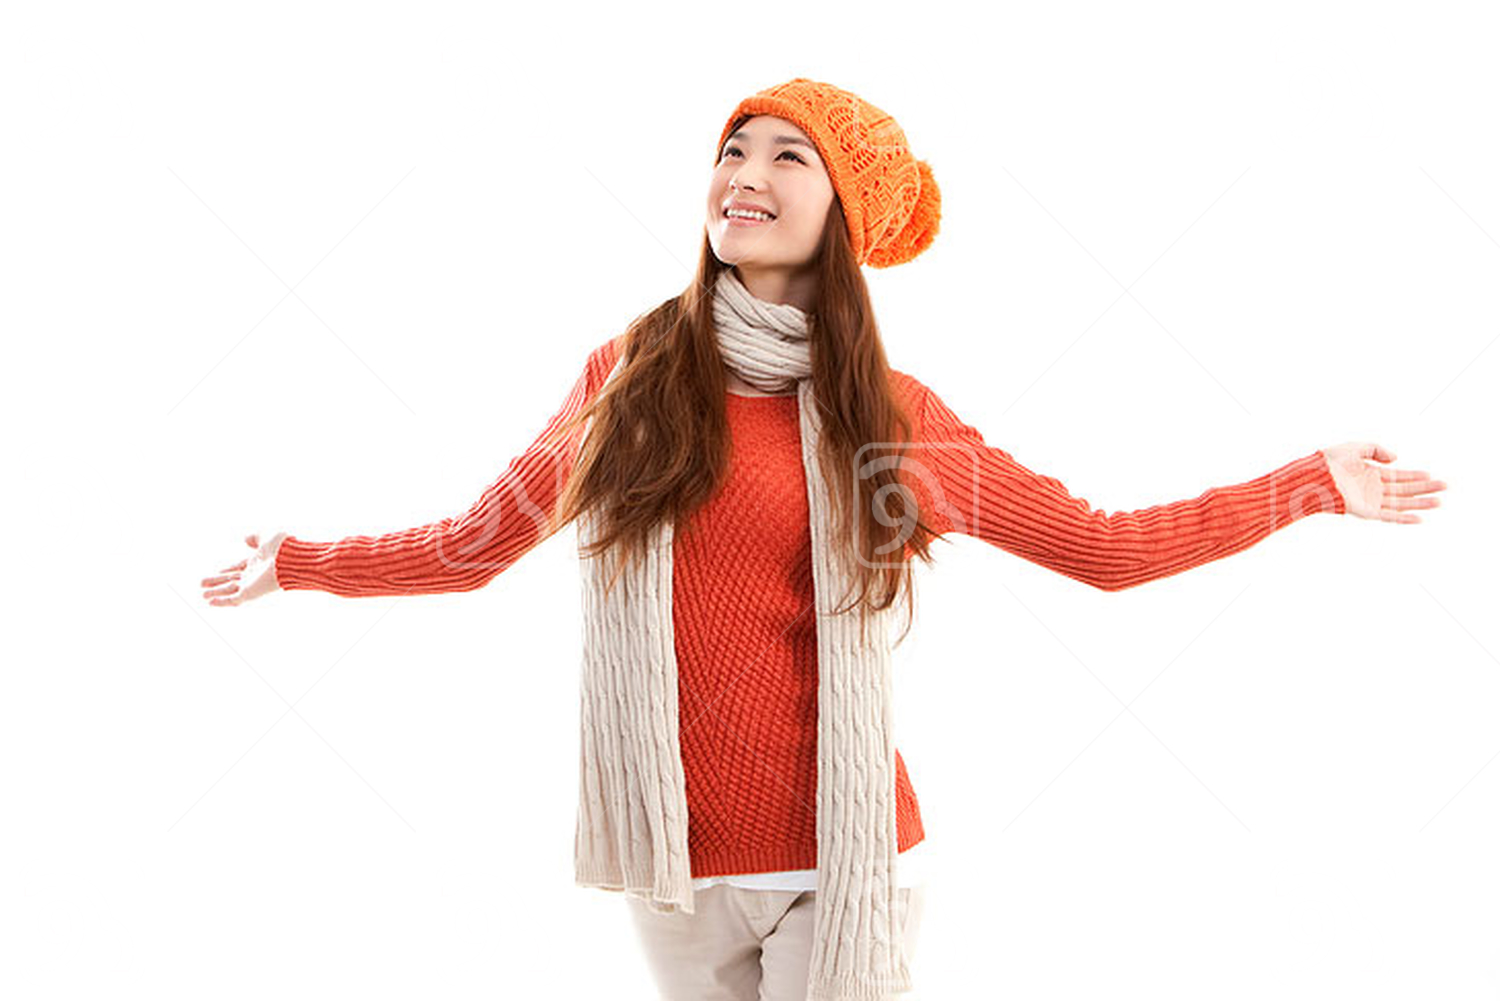 Young Chinese woman arms outstretched